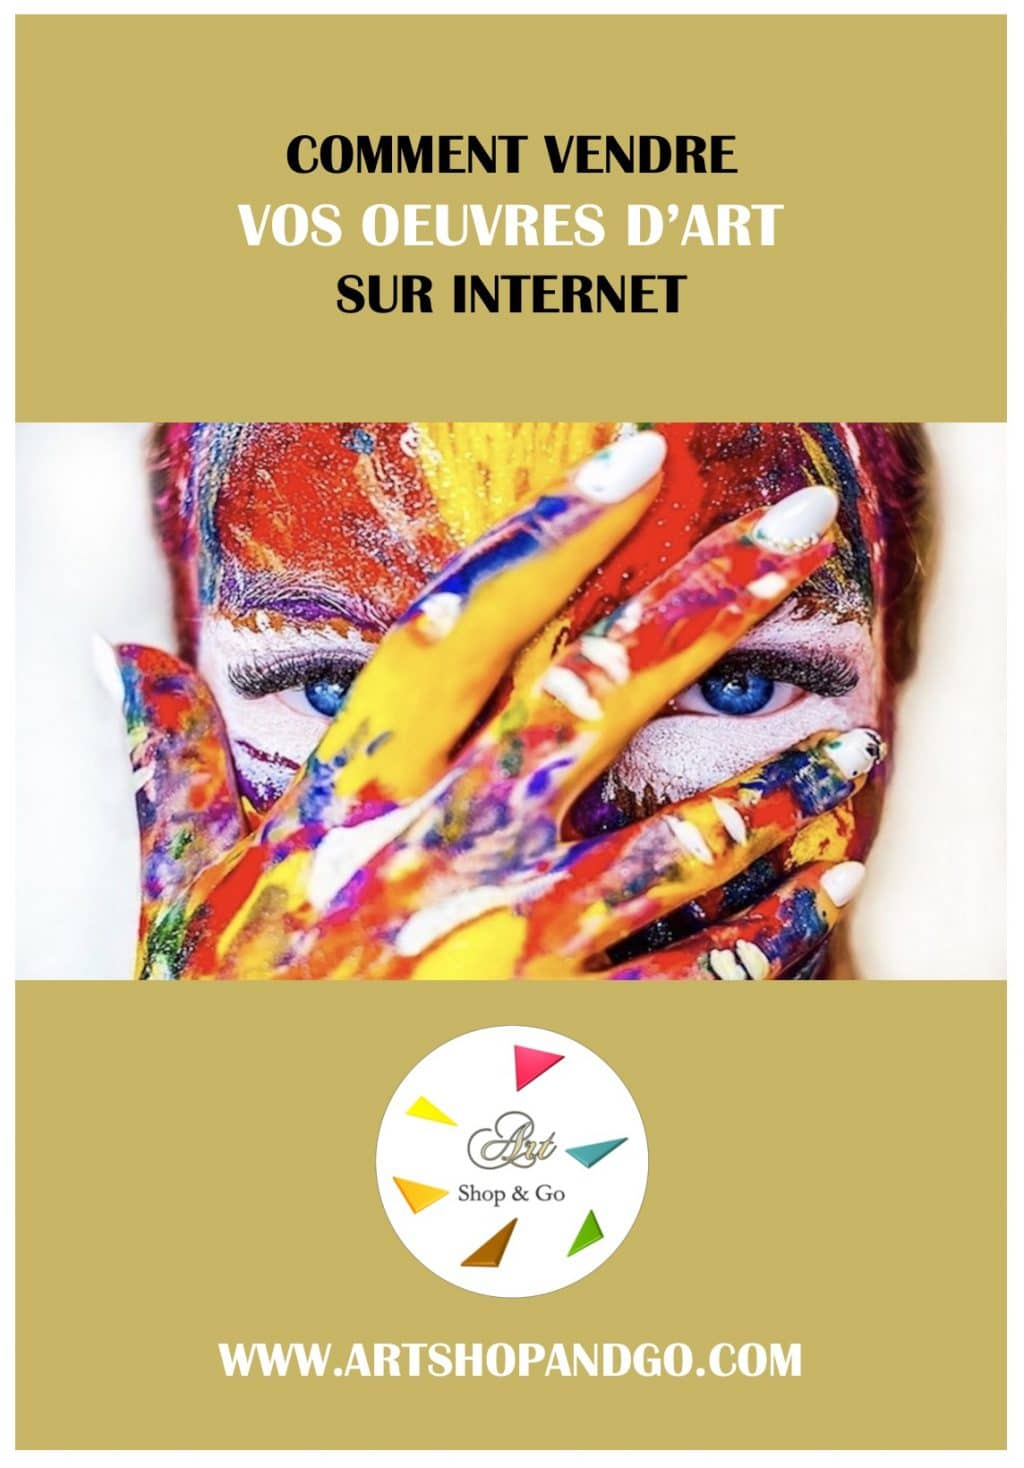 Comment vendre vos oeuvres d'art sur internet